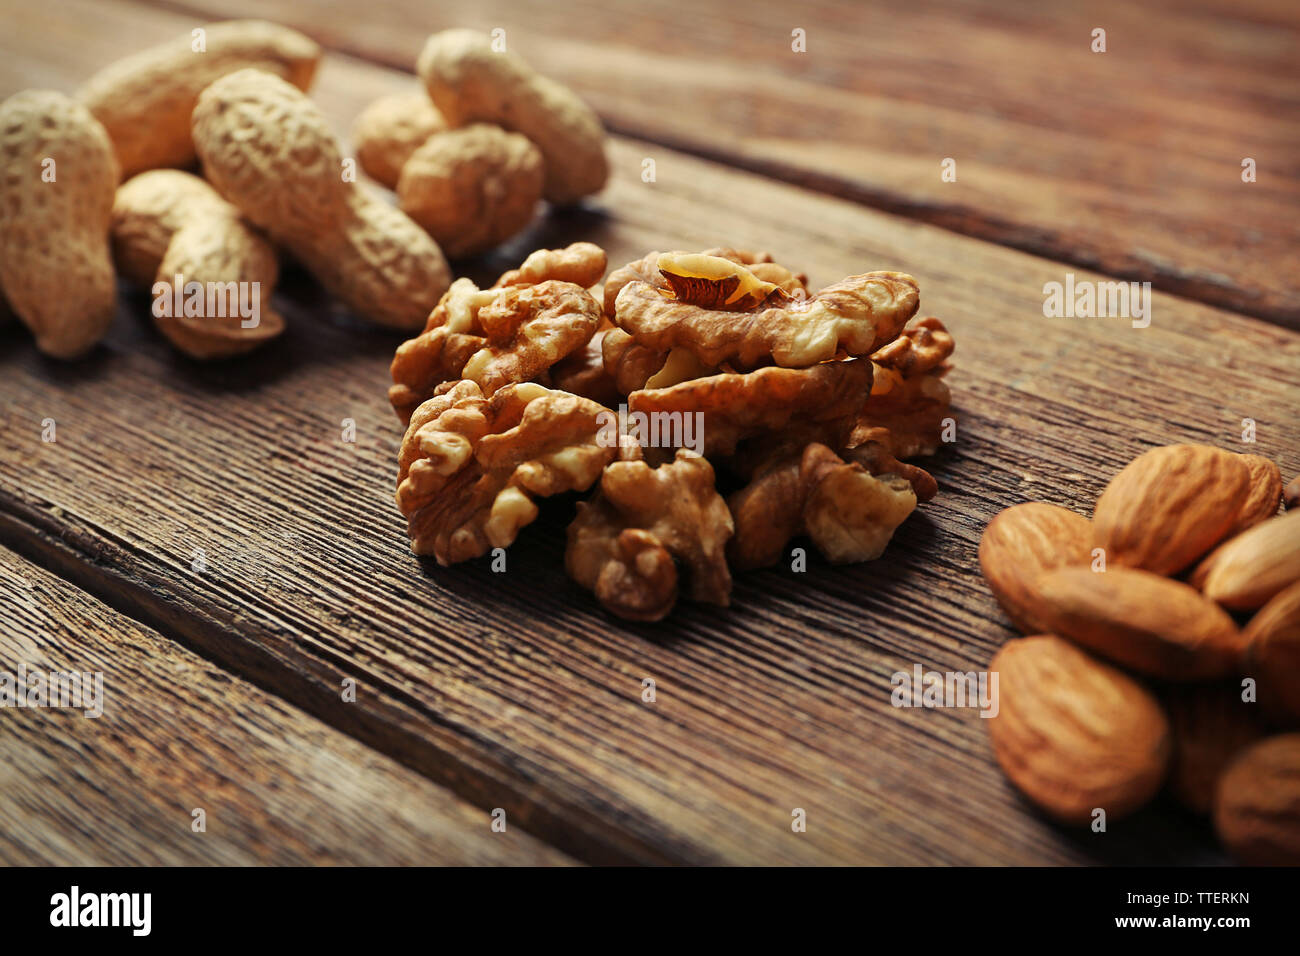 Peanuts, walnut kernel and almonds on the wooden table, close-up Stock Photo